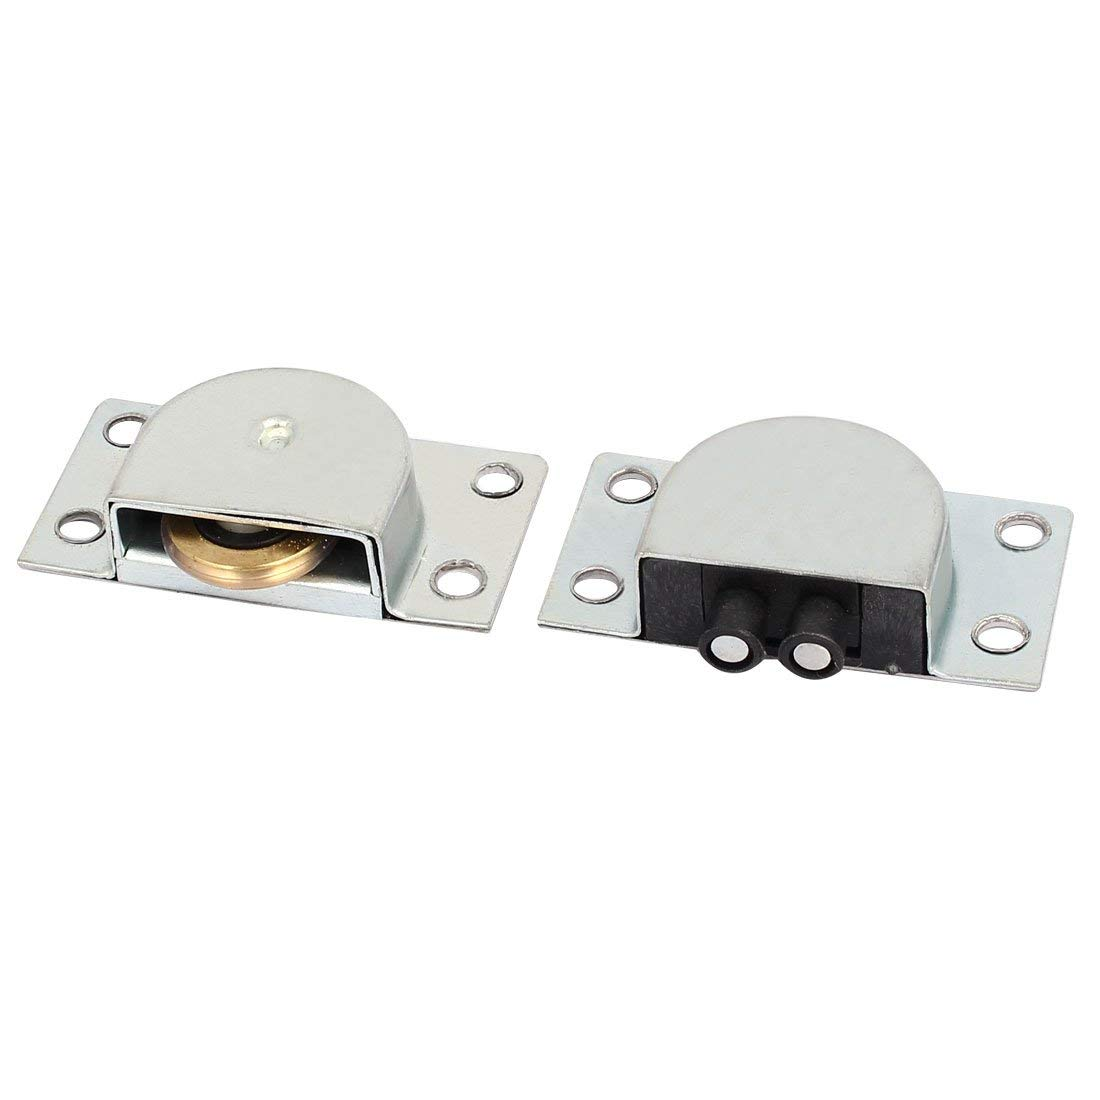 Buy Aexit 21mm Dia Cabinet Hardware Male Threaded 95mm